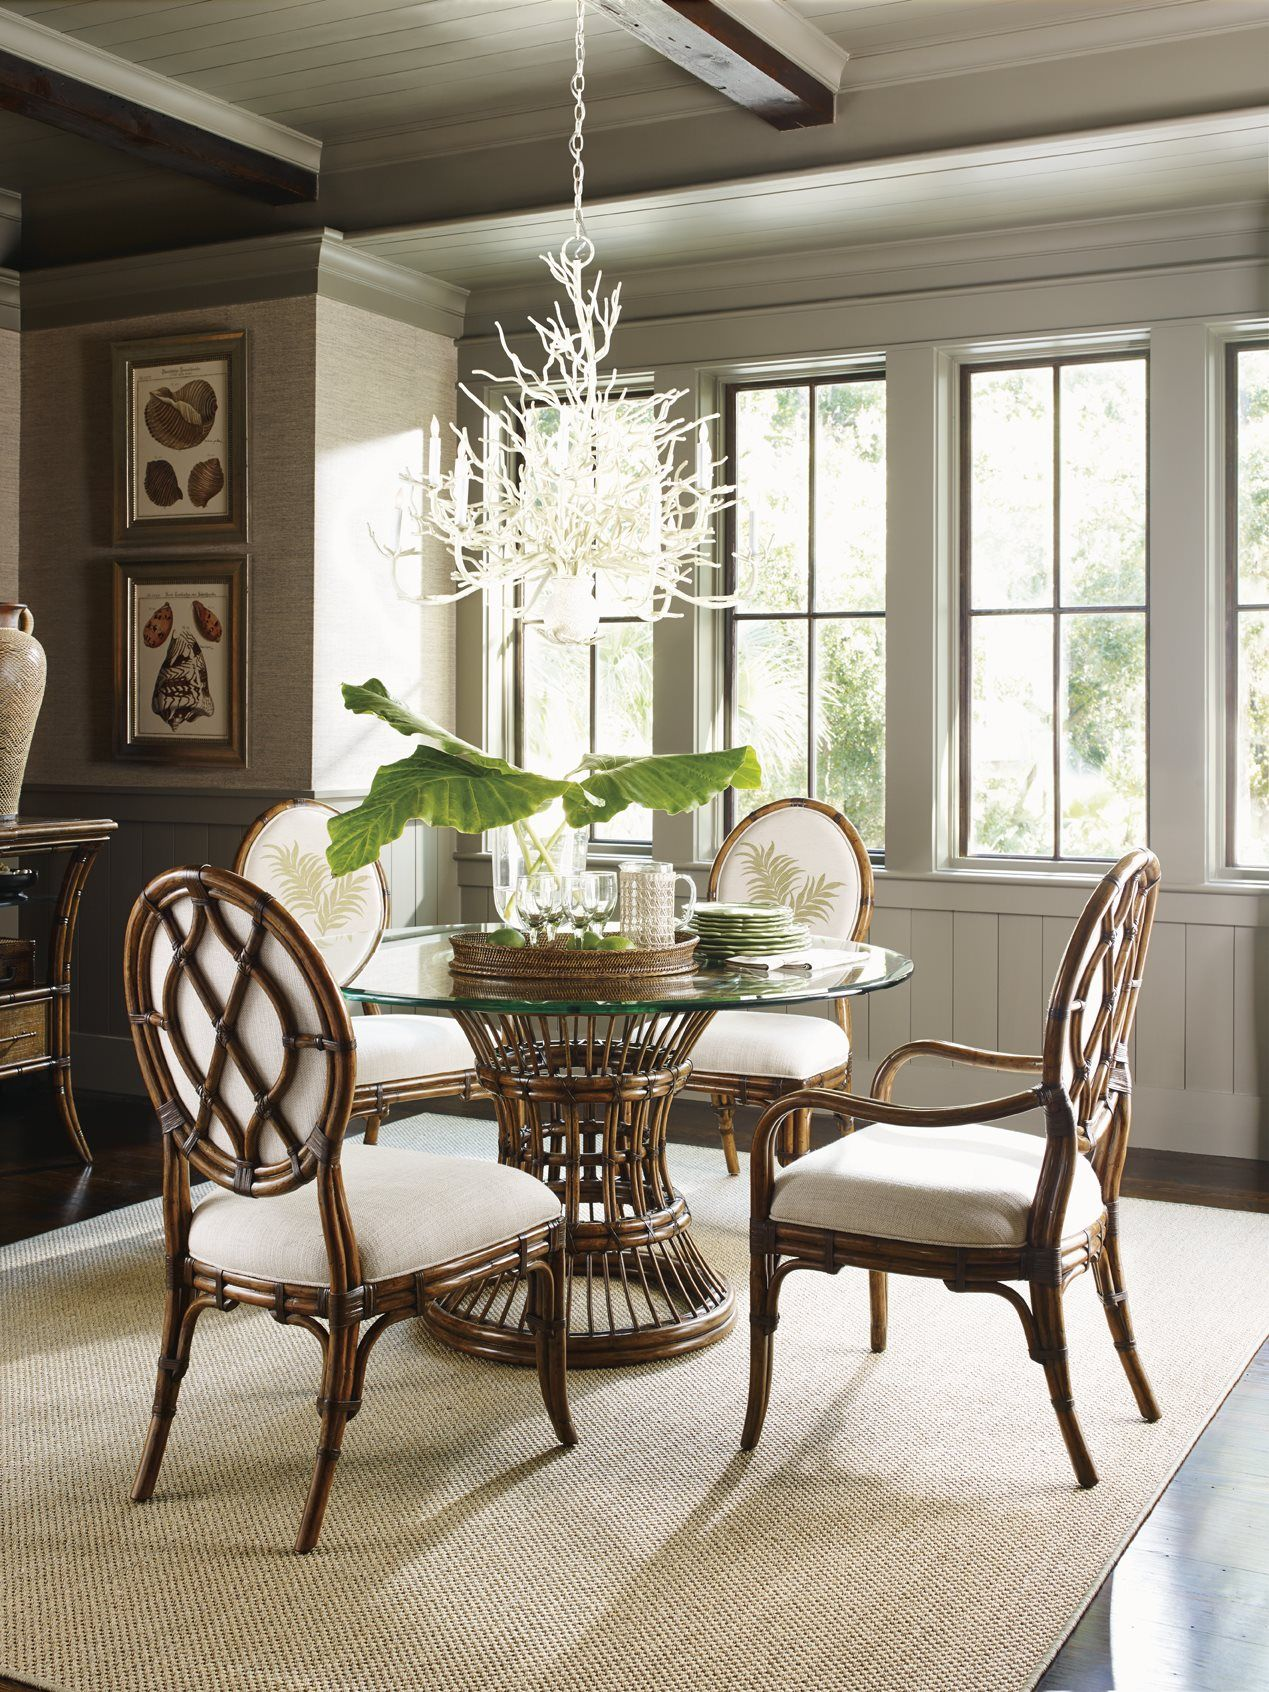 Tommy Bahama Bali Hai 593 875 Latitude 48 Round Dining Table British Colonial Decor Dining Table Bases Casual Dining Room Tables